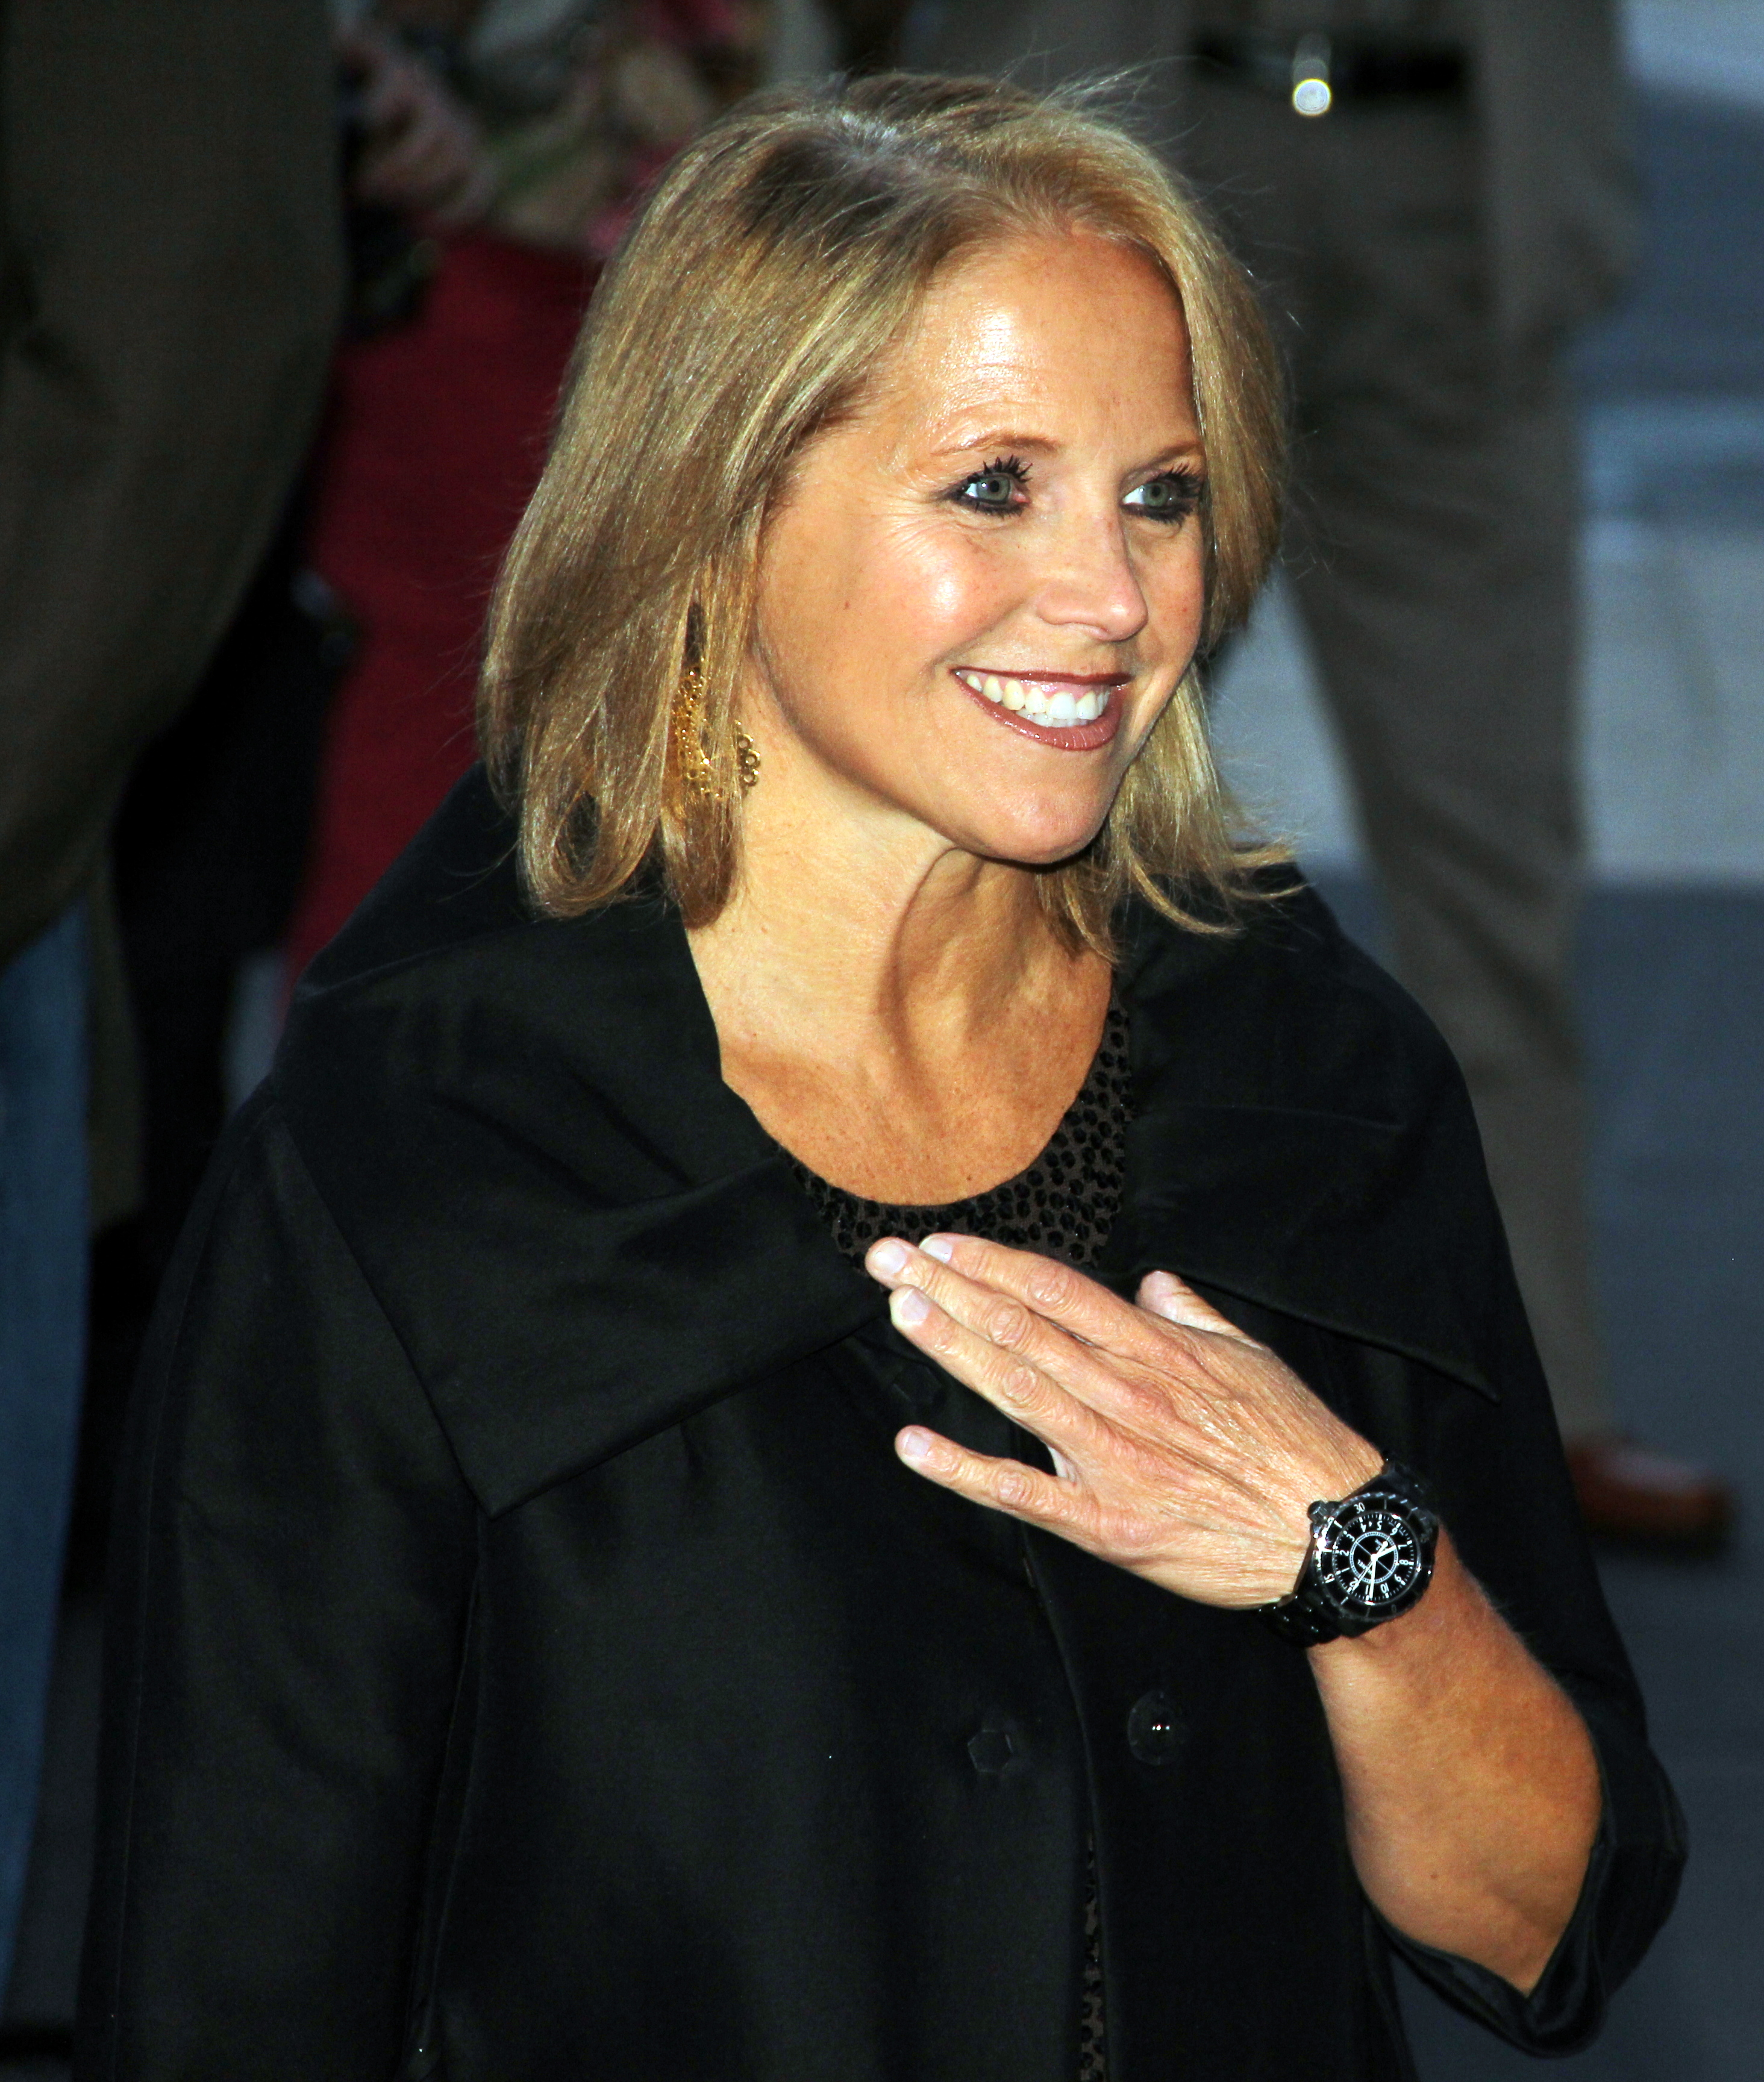 File:Katie Couric 2011.jpg